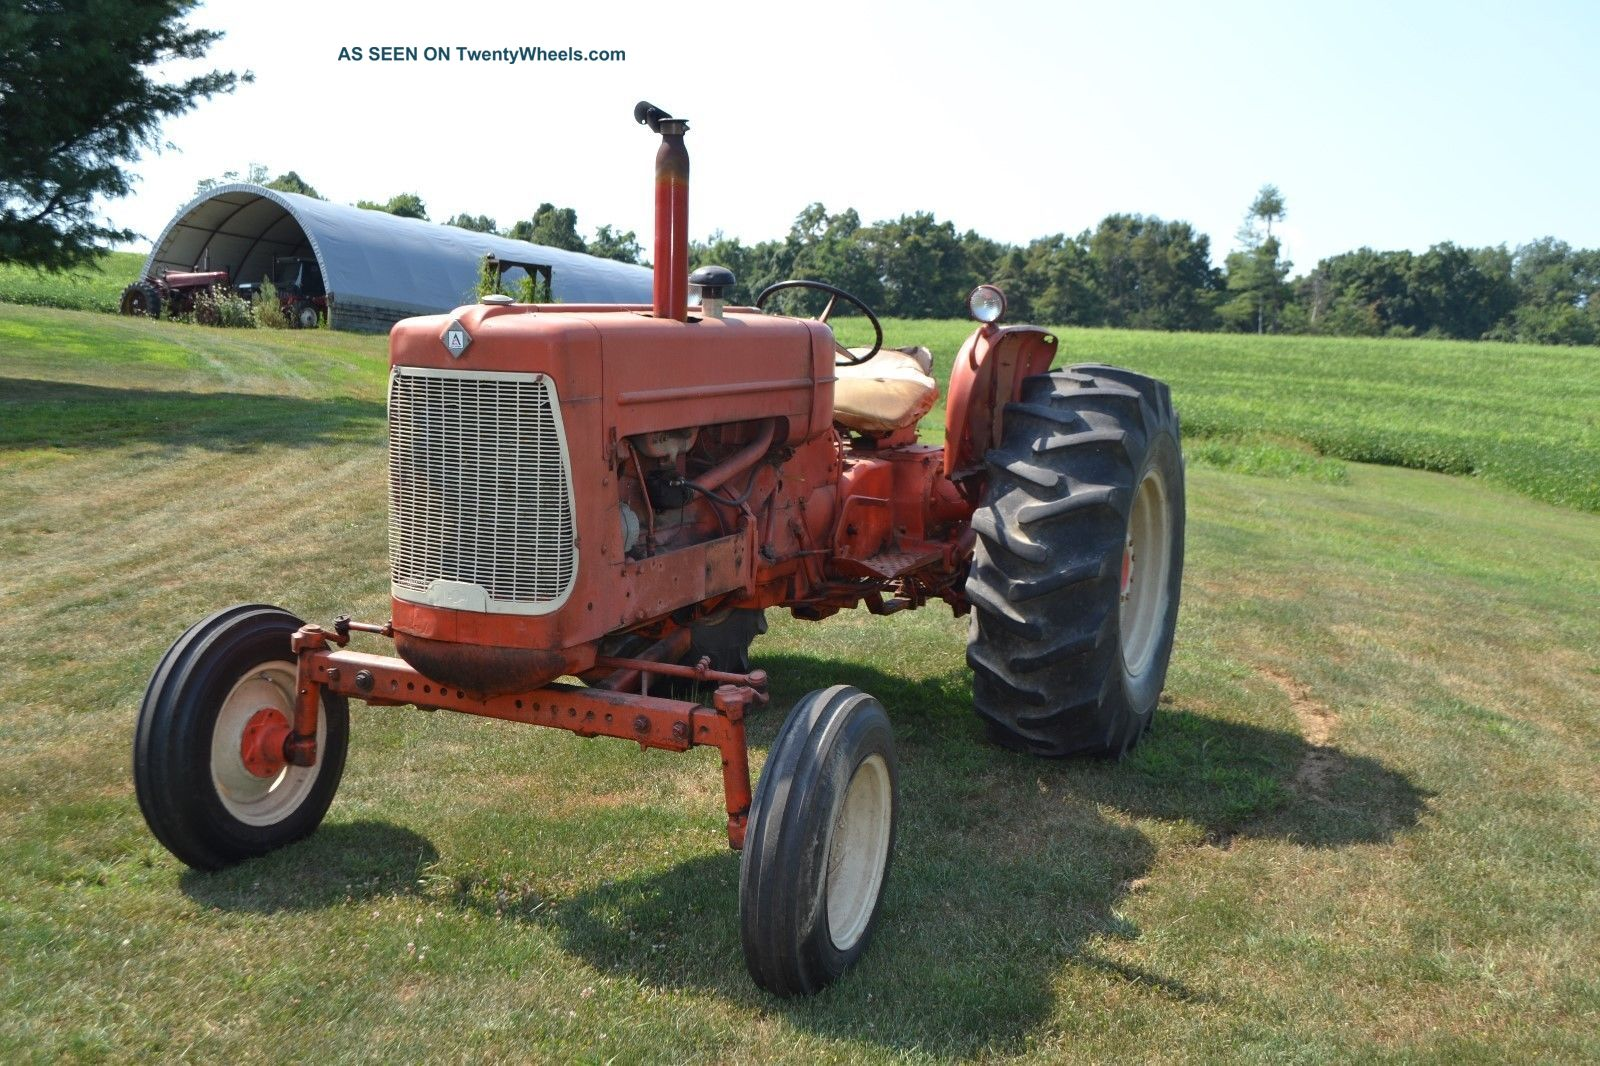 allis chalmers d17 series iv tractor wide front 3pt hit